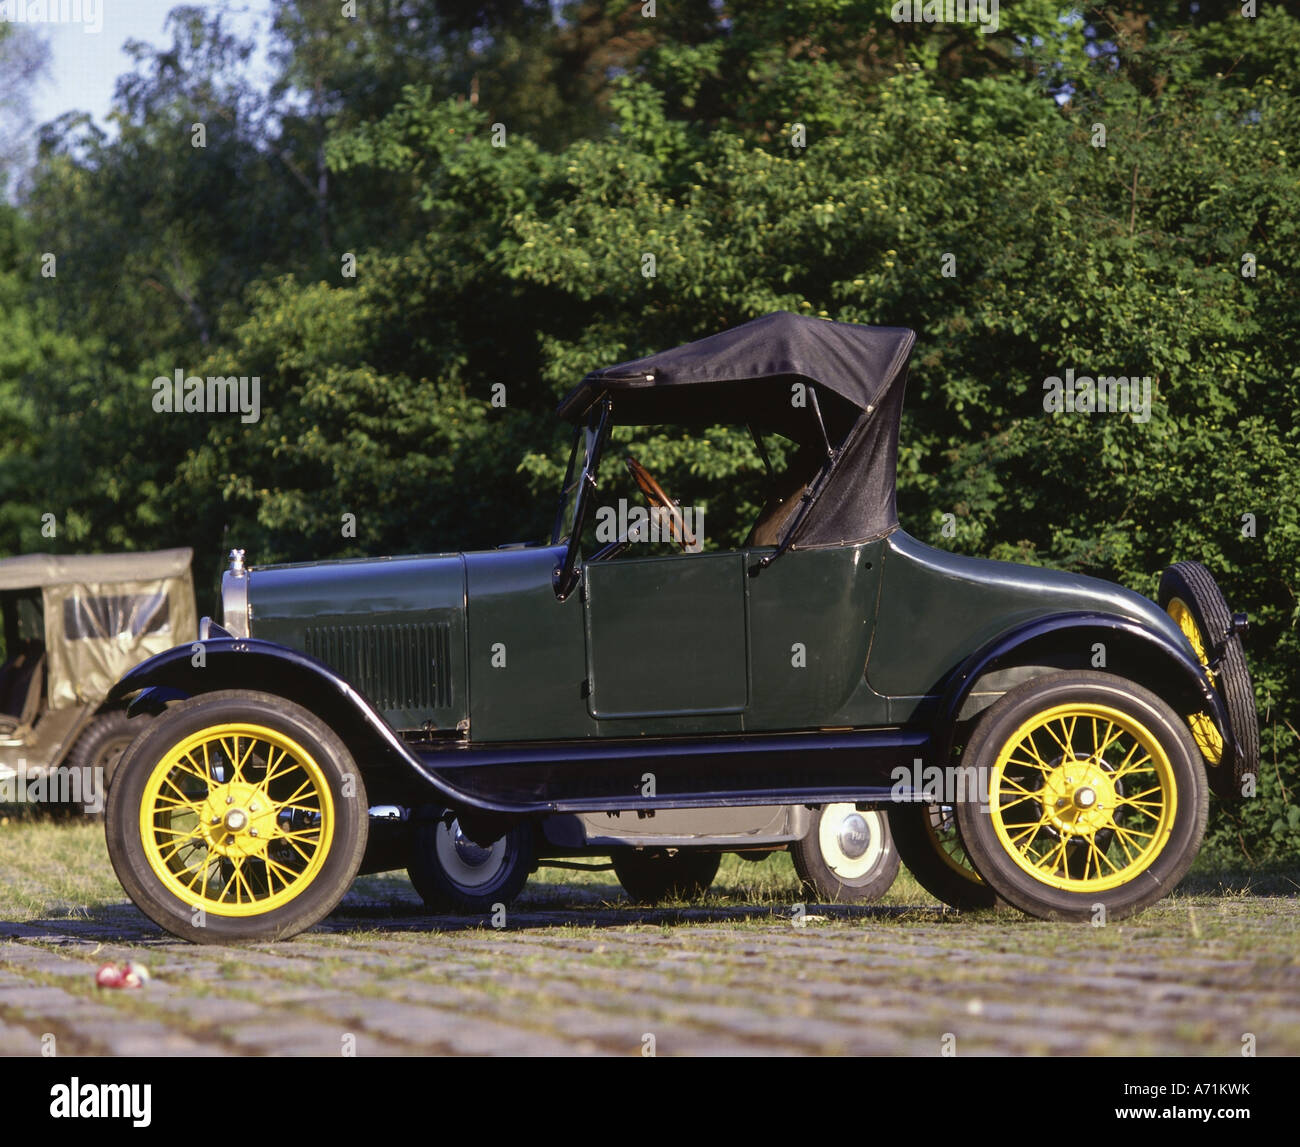 transport transportation cars ford model t runabout 1926 1927 tin lizzy 20th century historic historical car u